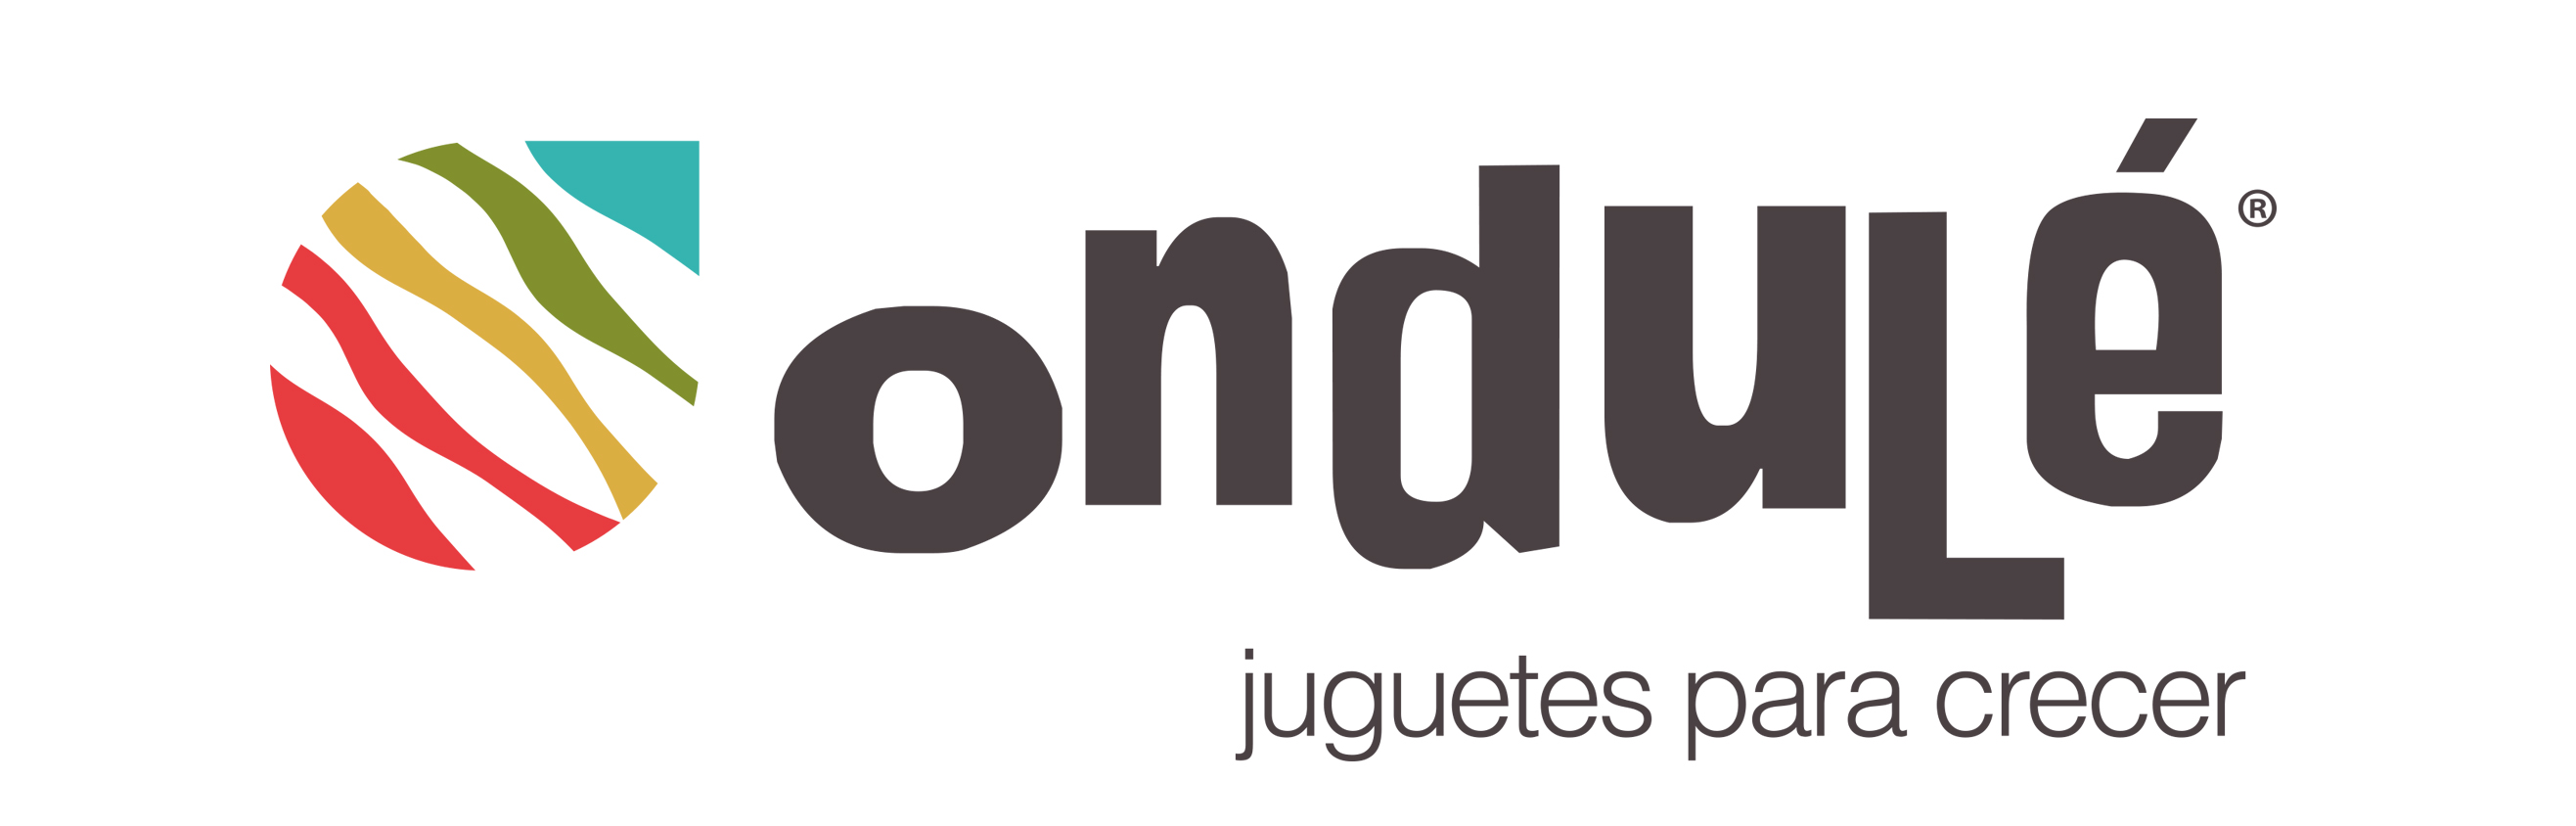 Logo for Ondulé